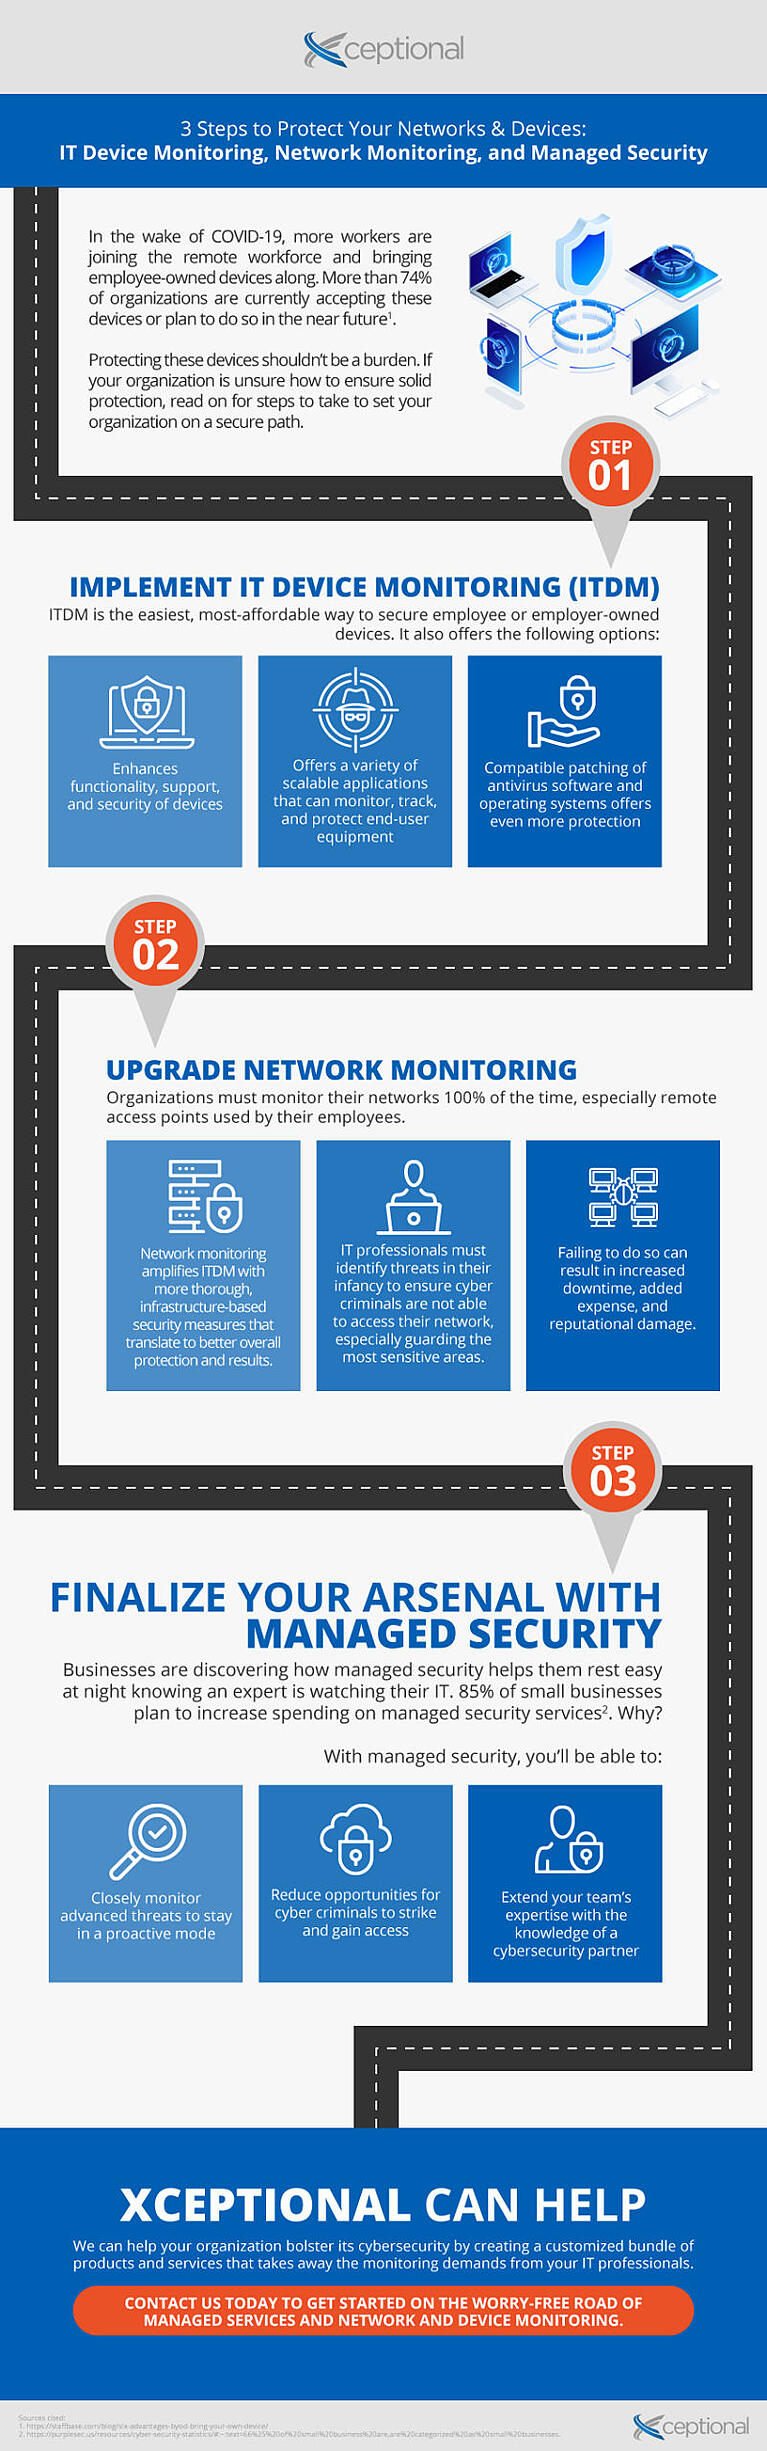 [Infographic]: 3 Steps to Protect Your Networks & Devices: IT Device Management, Network Monitoring, and Managed Security